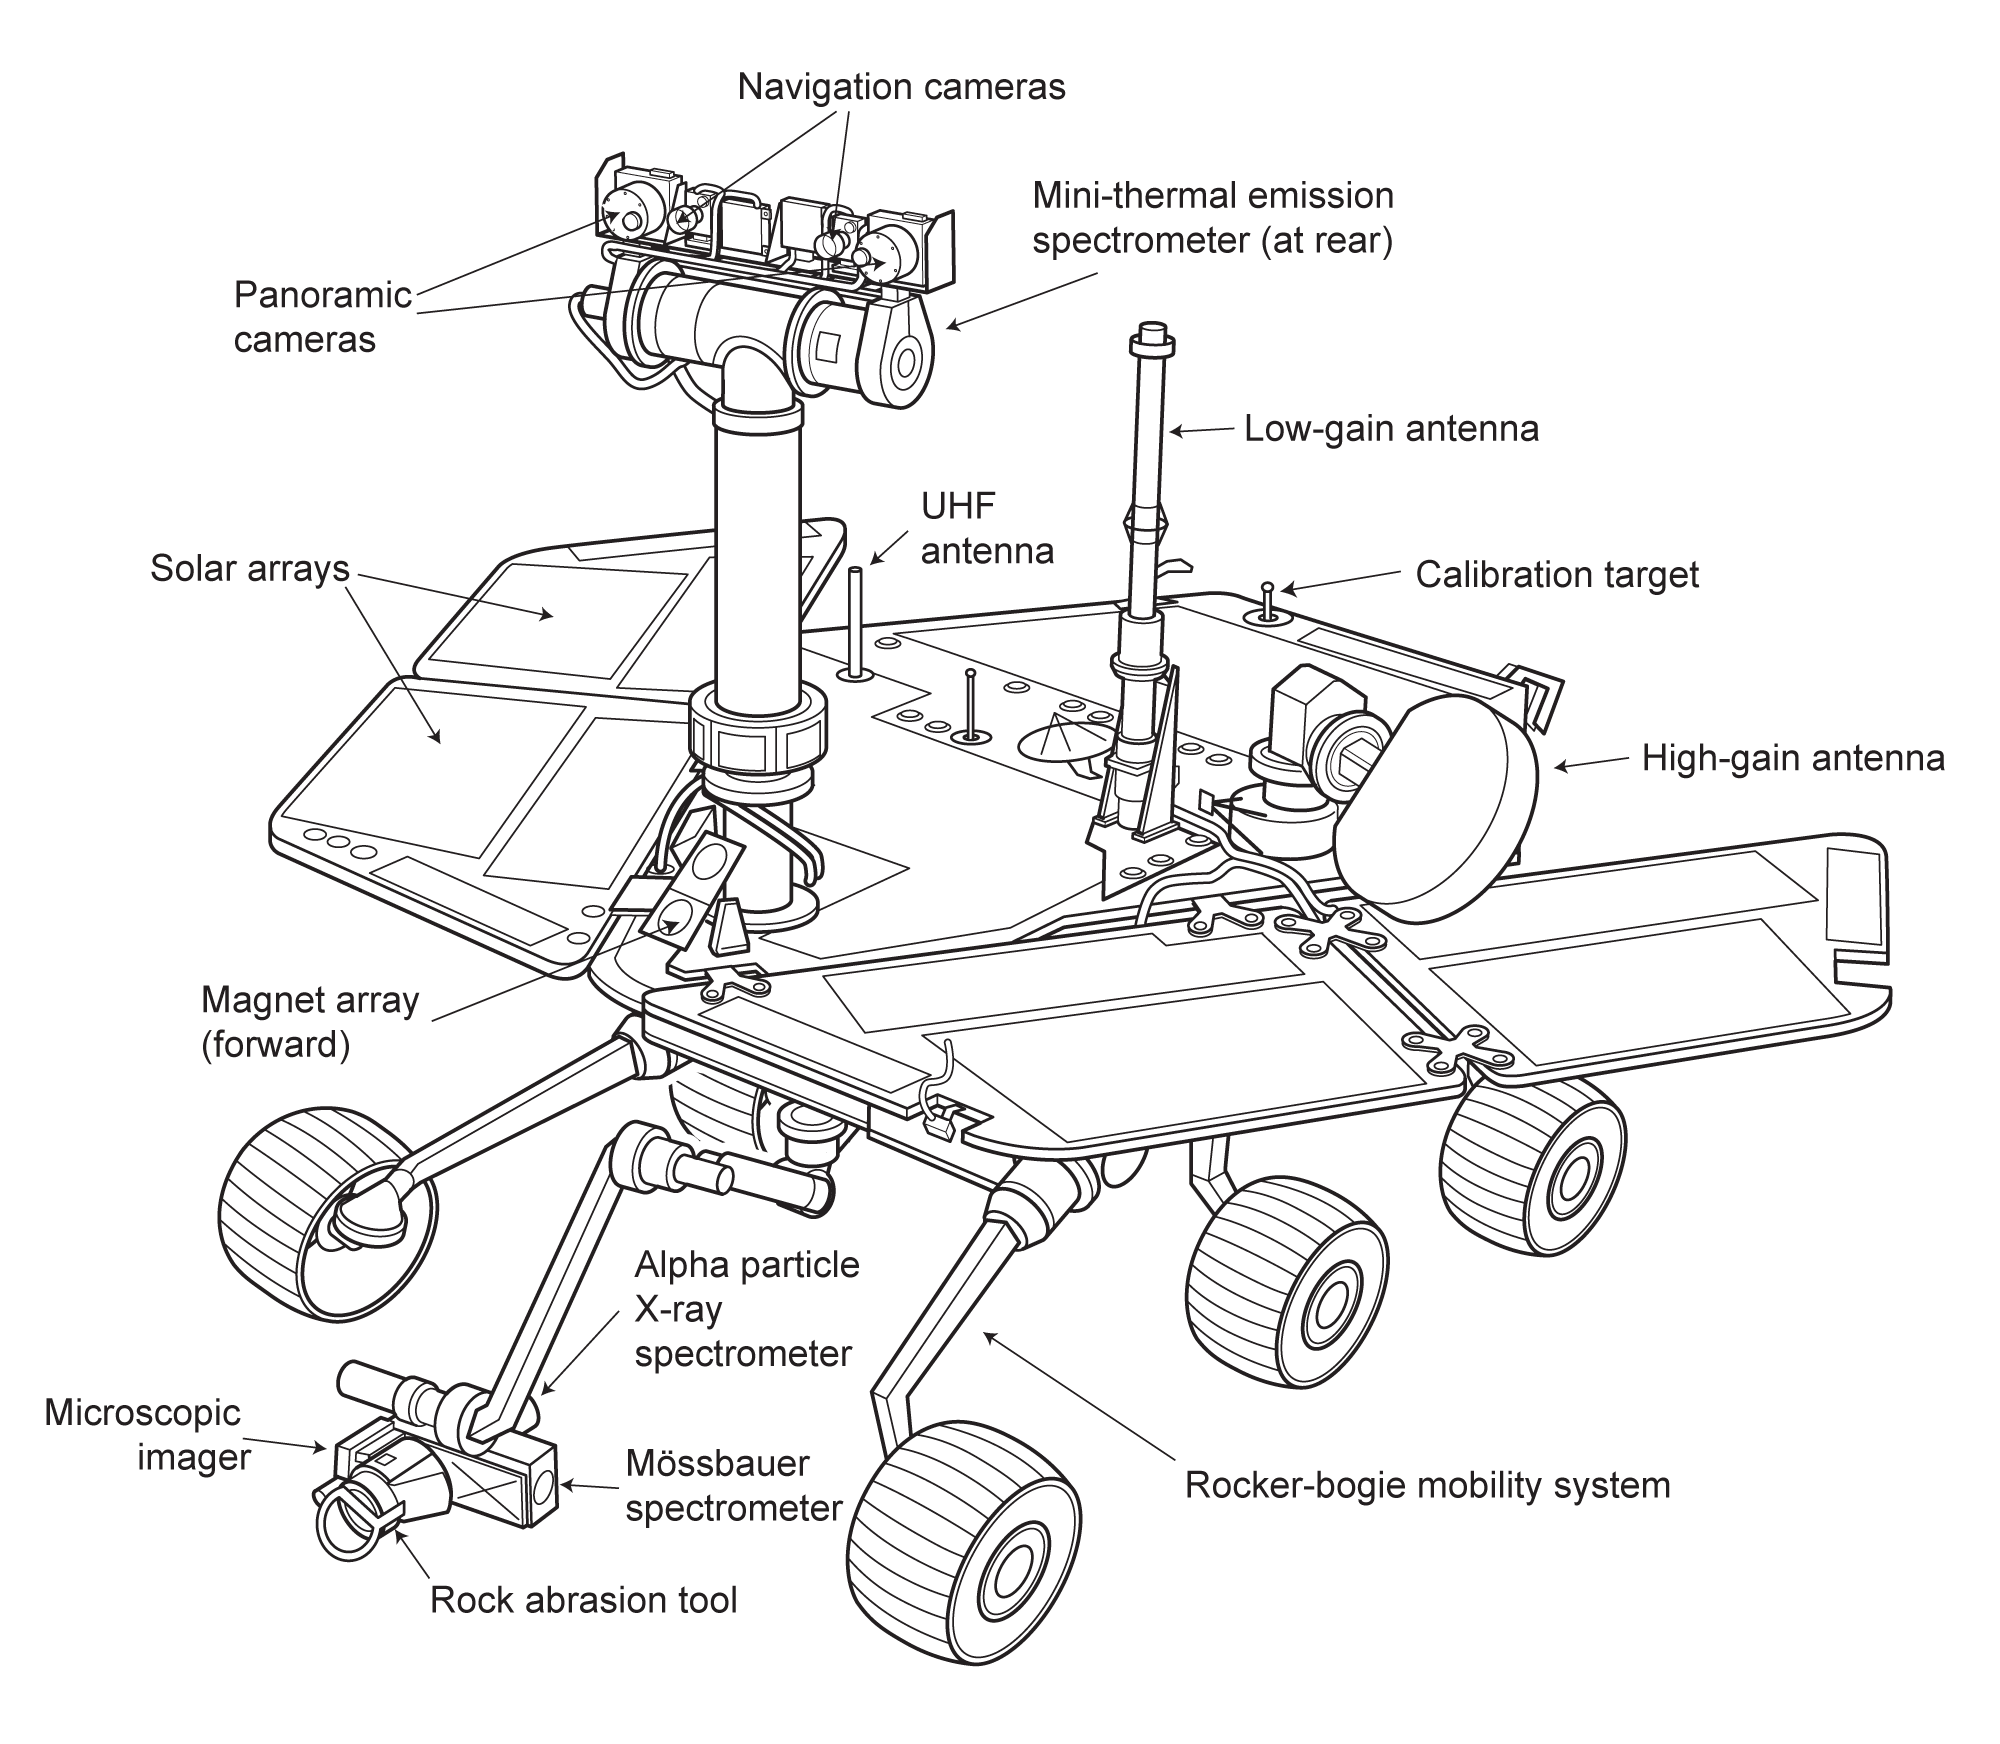 Mars Exploration Rover Spacecraft Diagram The Planetary Society